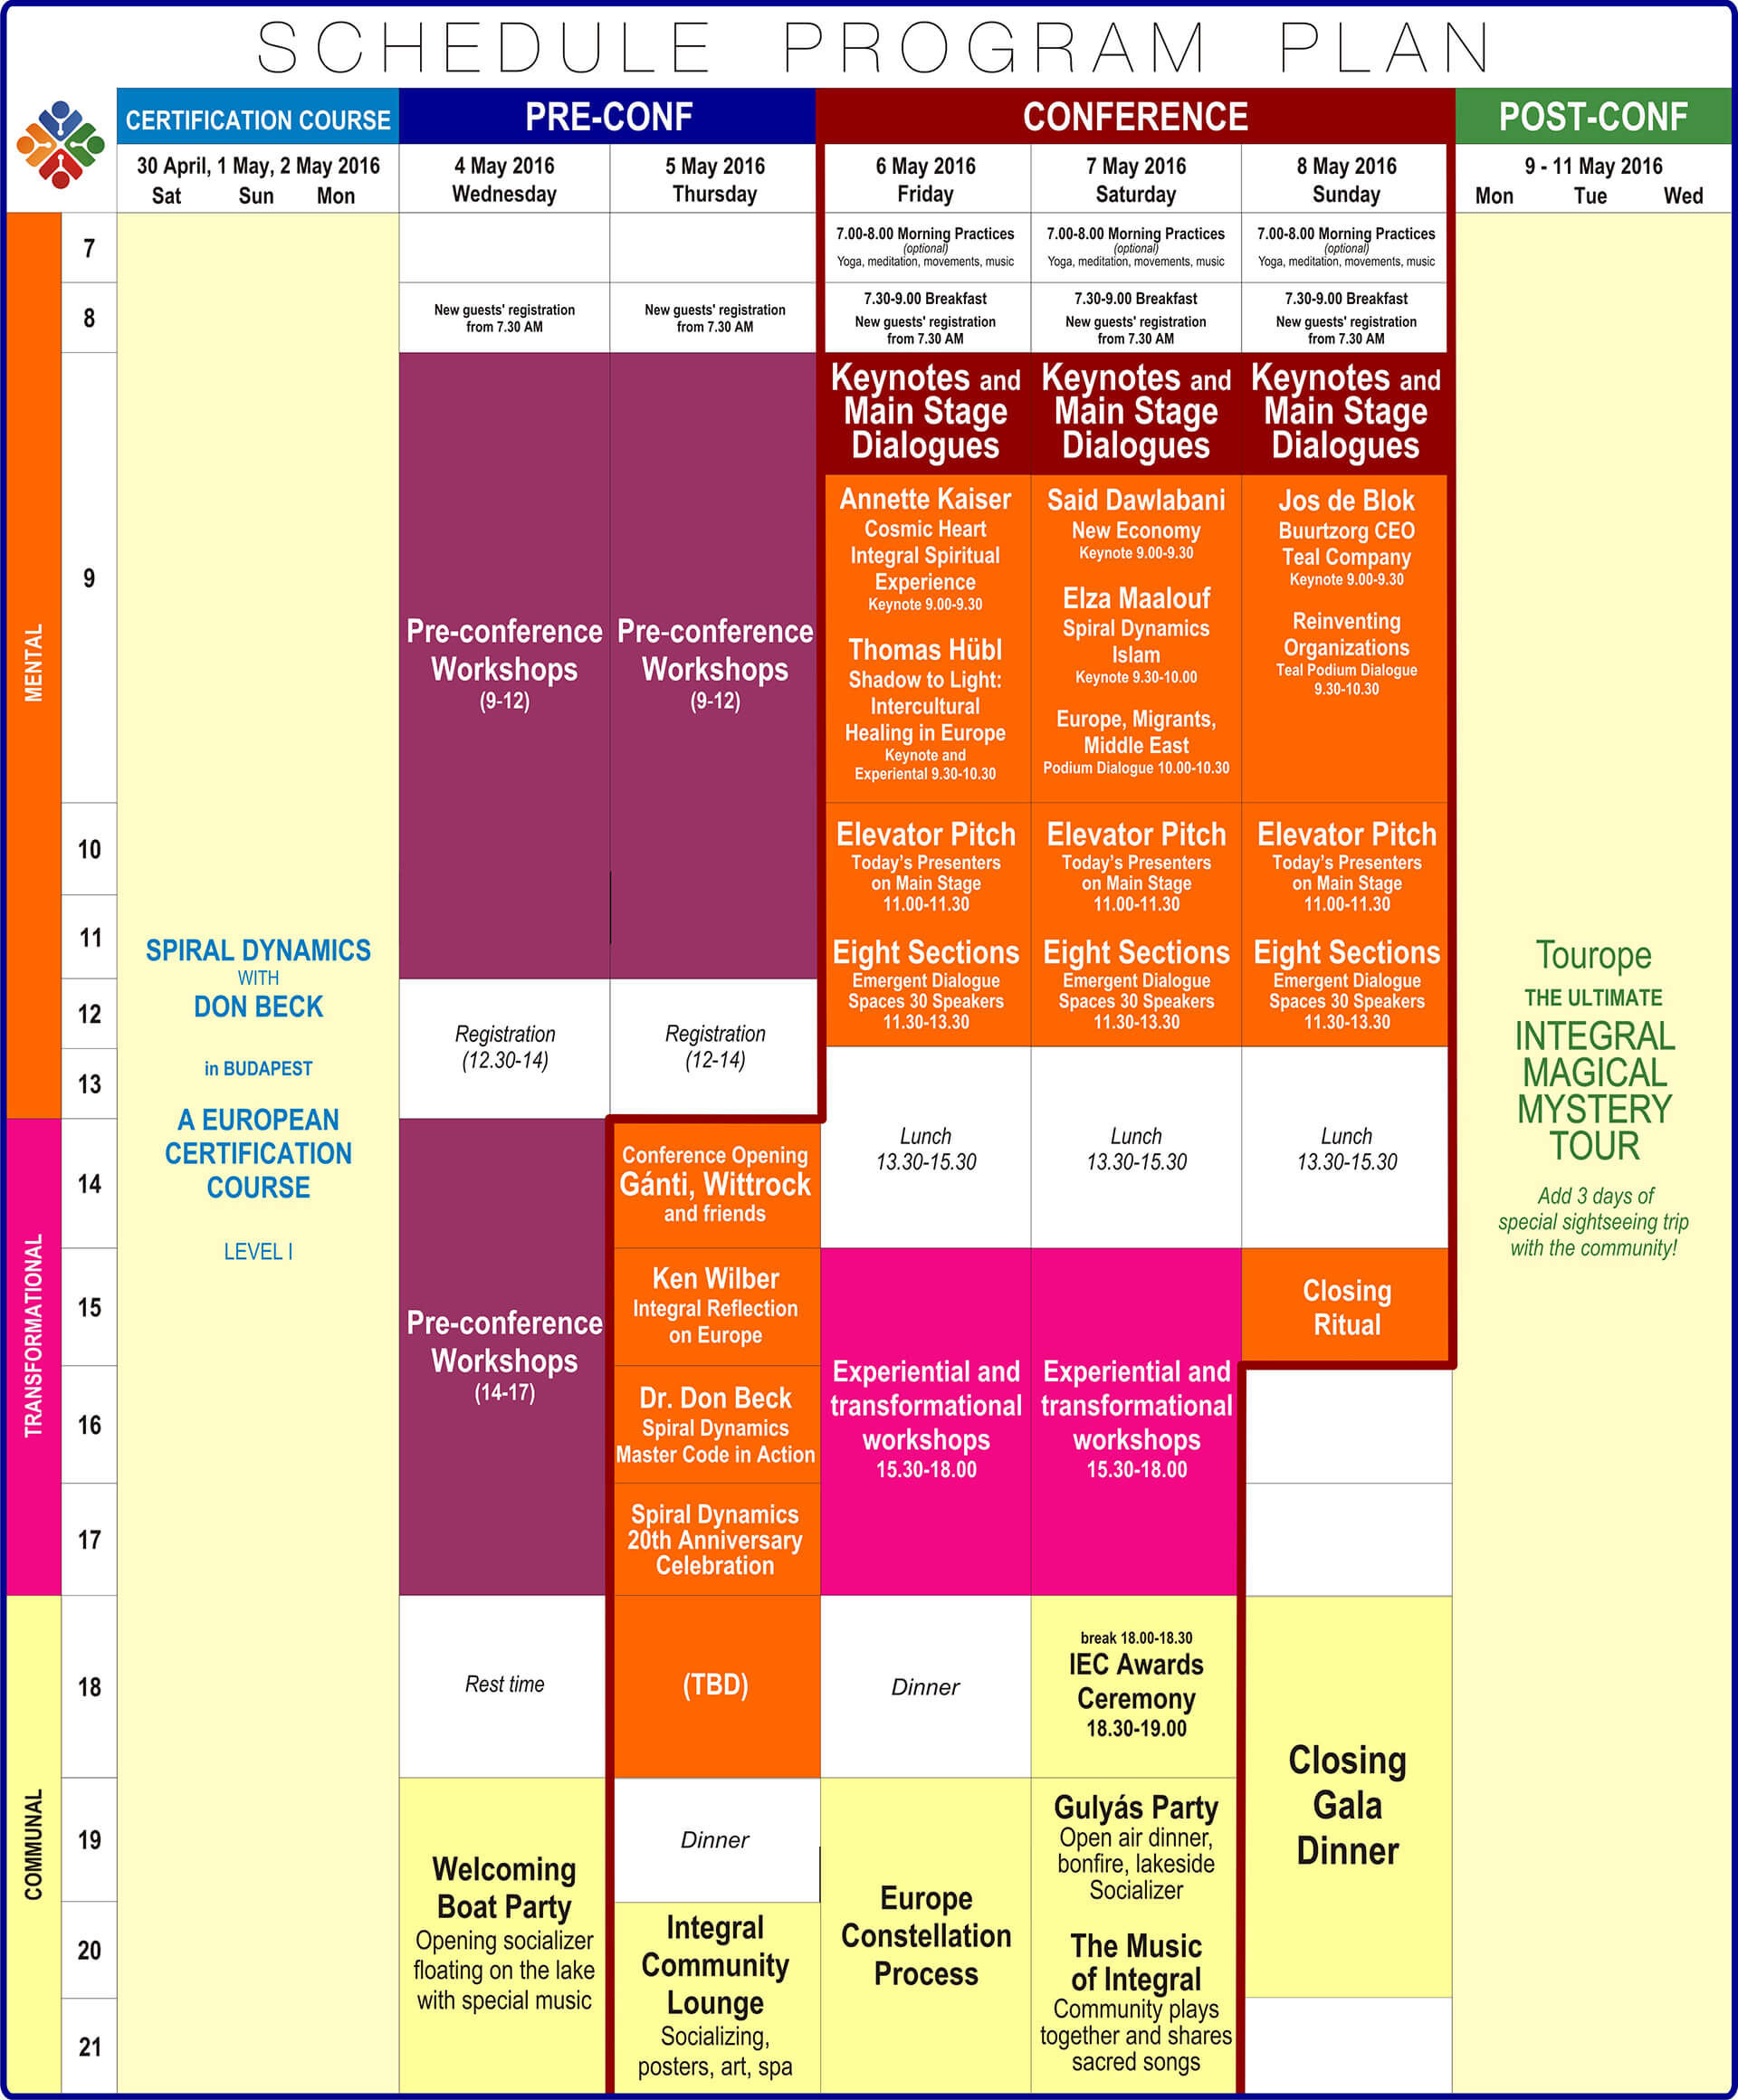 Program and conference structure